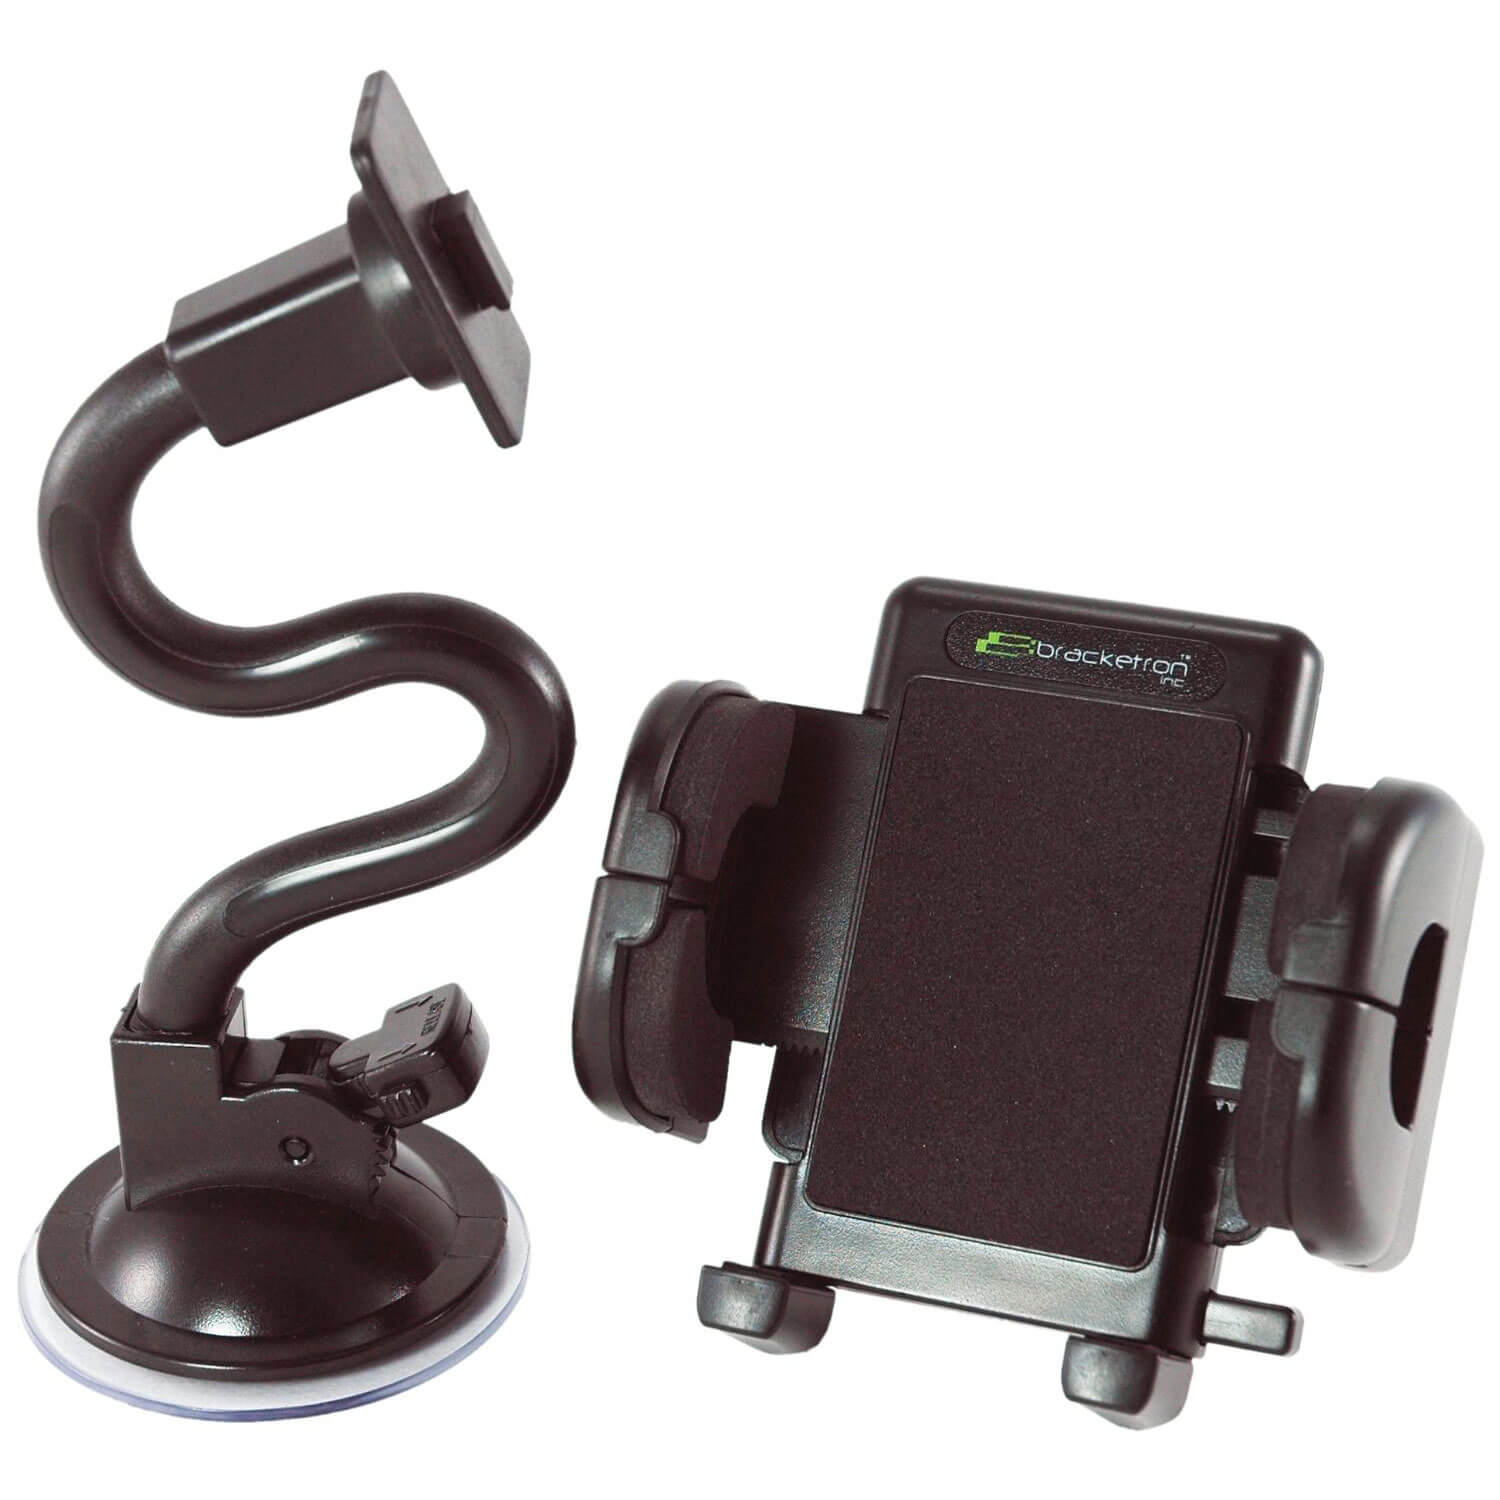 Mobile Grip-iT Rotating Windshield Mount for GPS